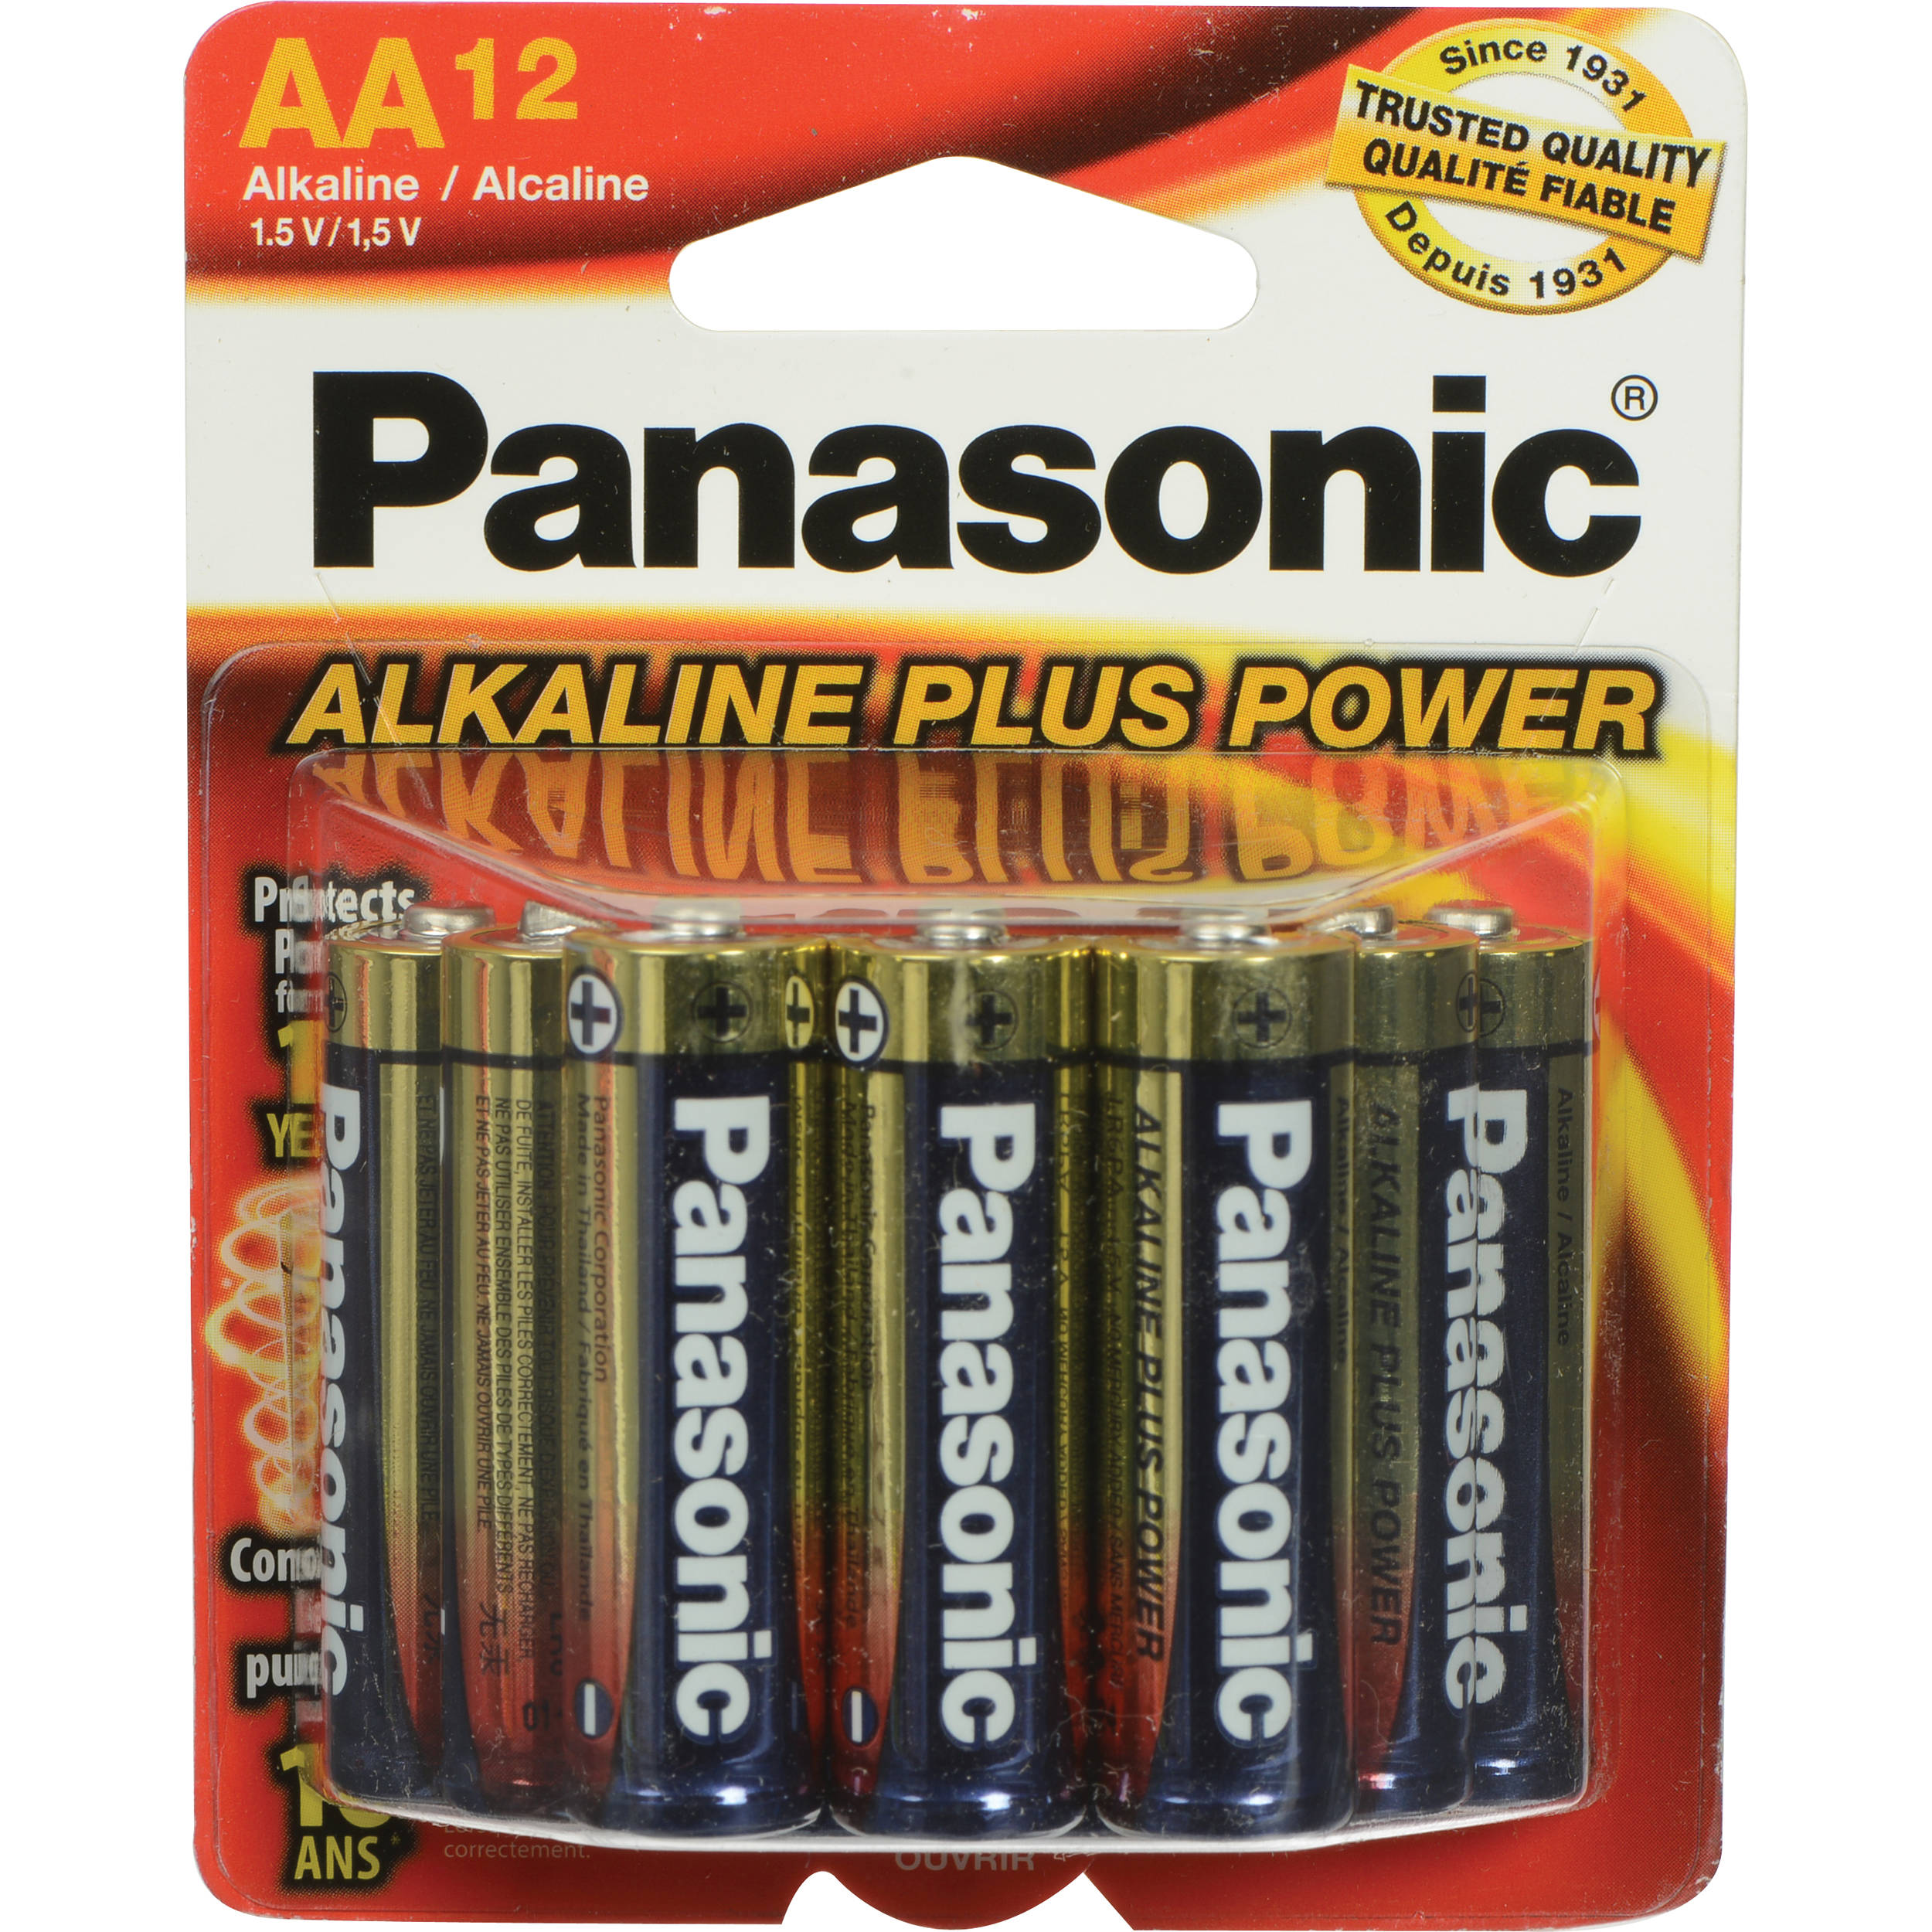 Panasonic AA 15V Alkaline Batteries 12 Pack PAN12AA BH Photo